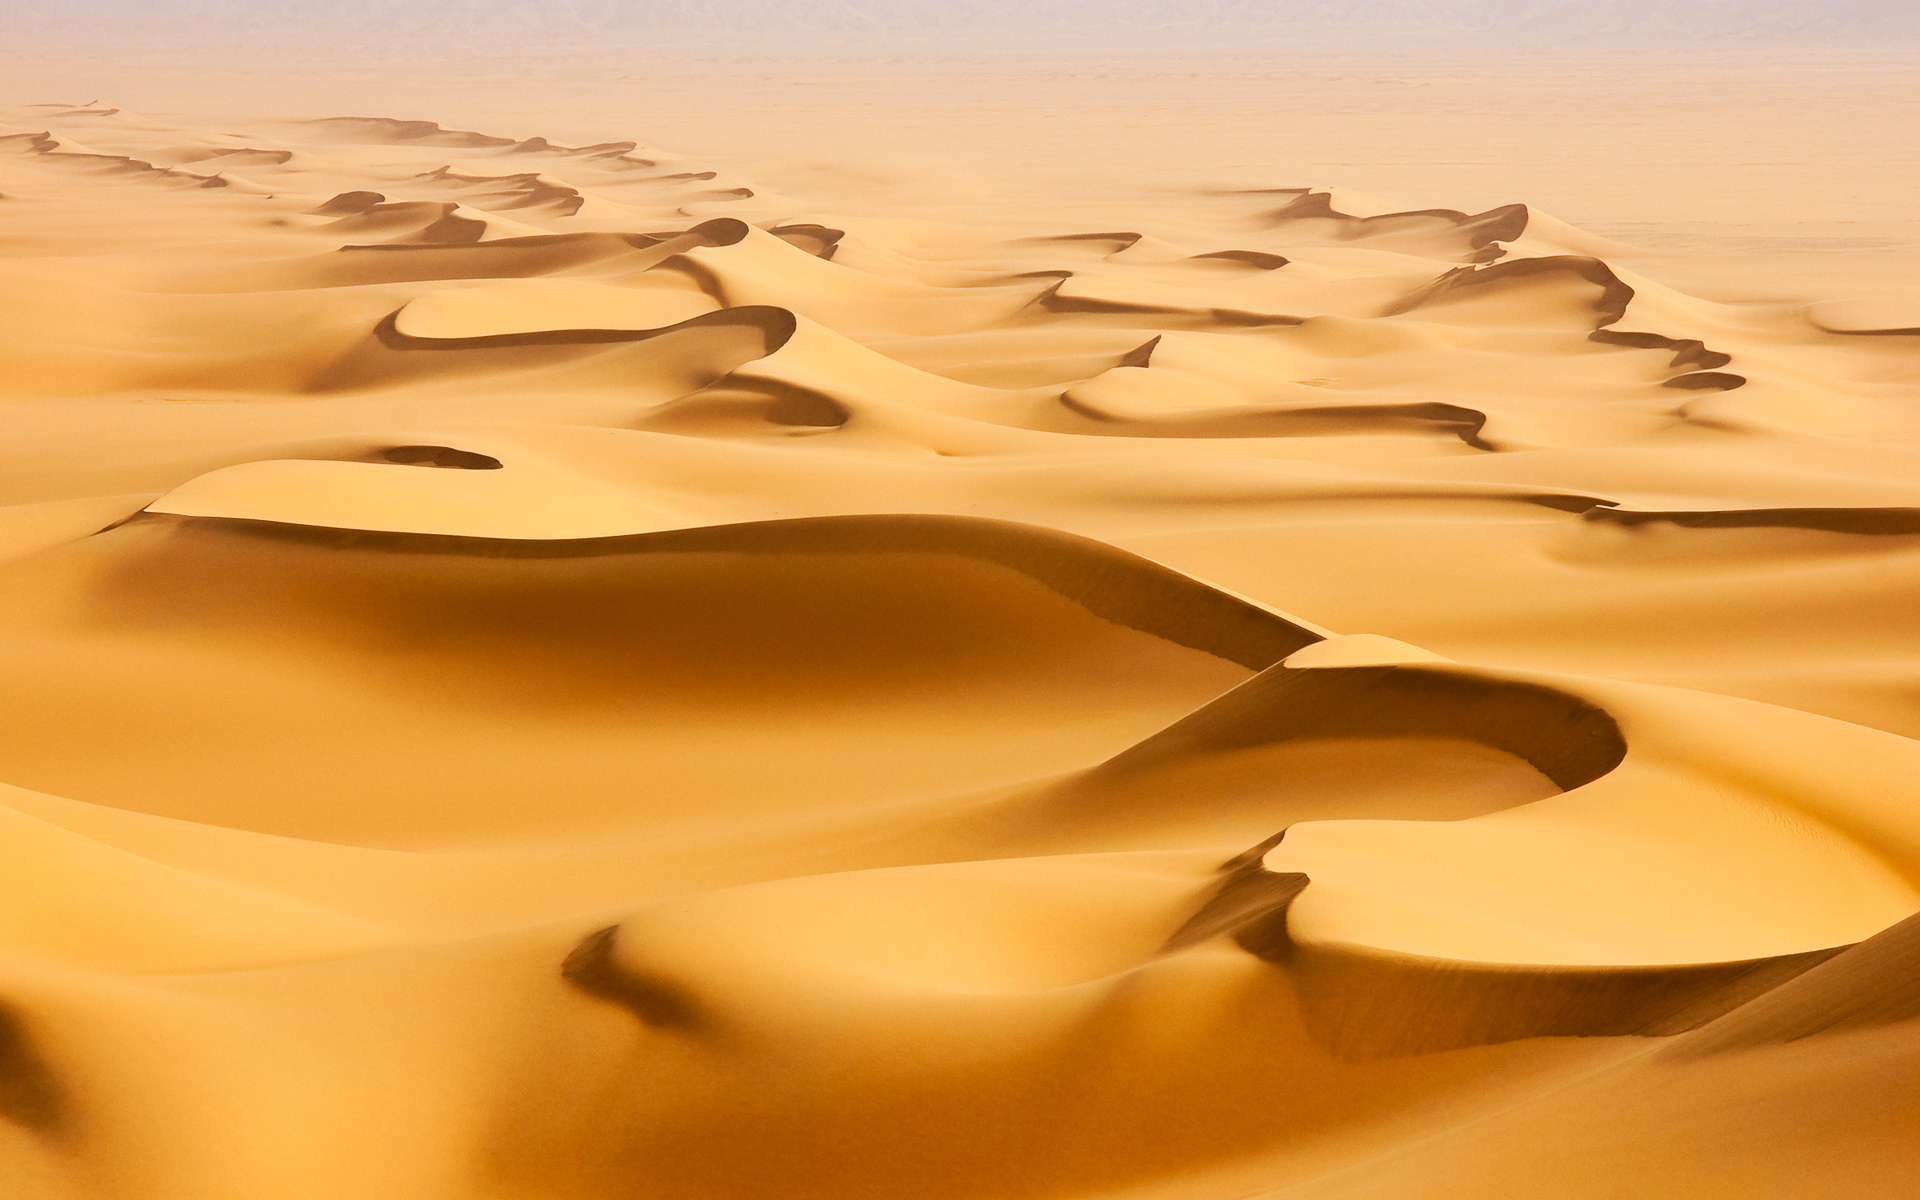 Amazing Desert Sand Wallpaper